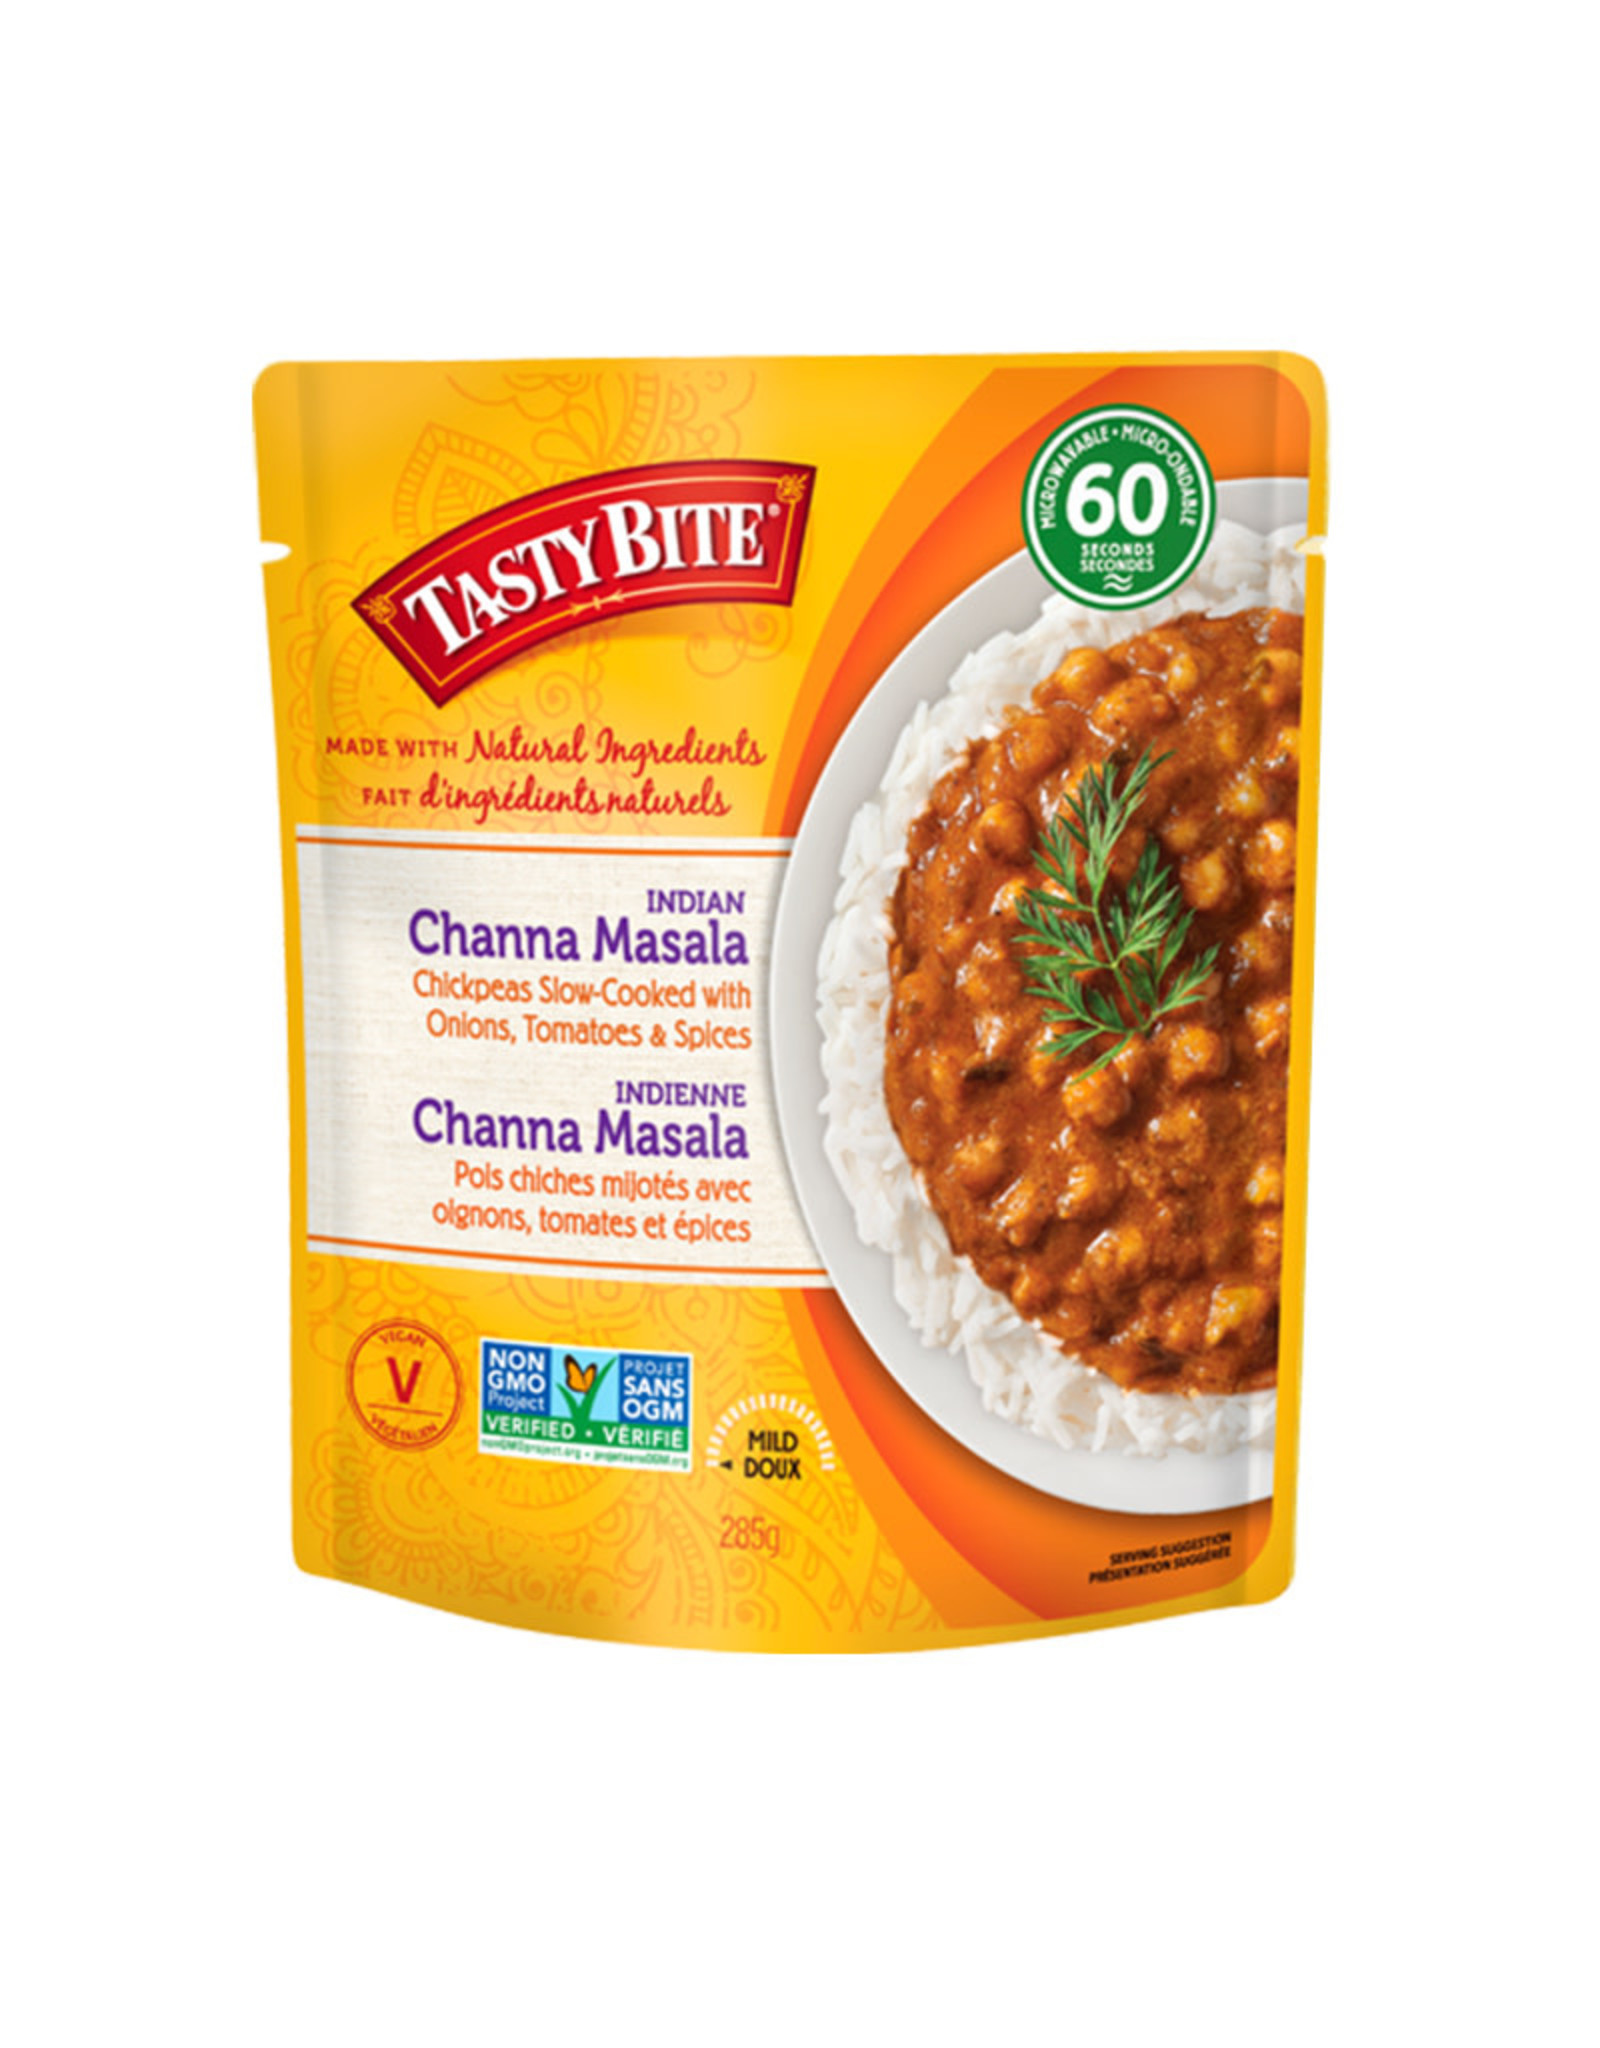 Tasty Bite Tasty Bite - Indian Channa Masala (285g)